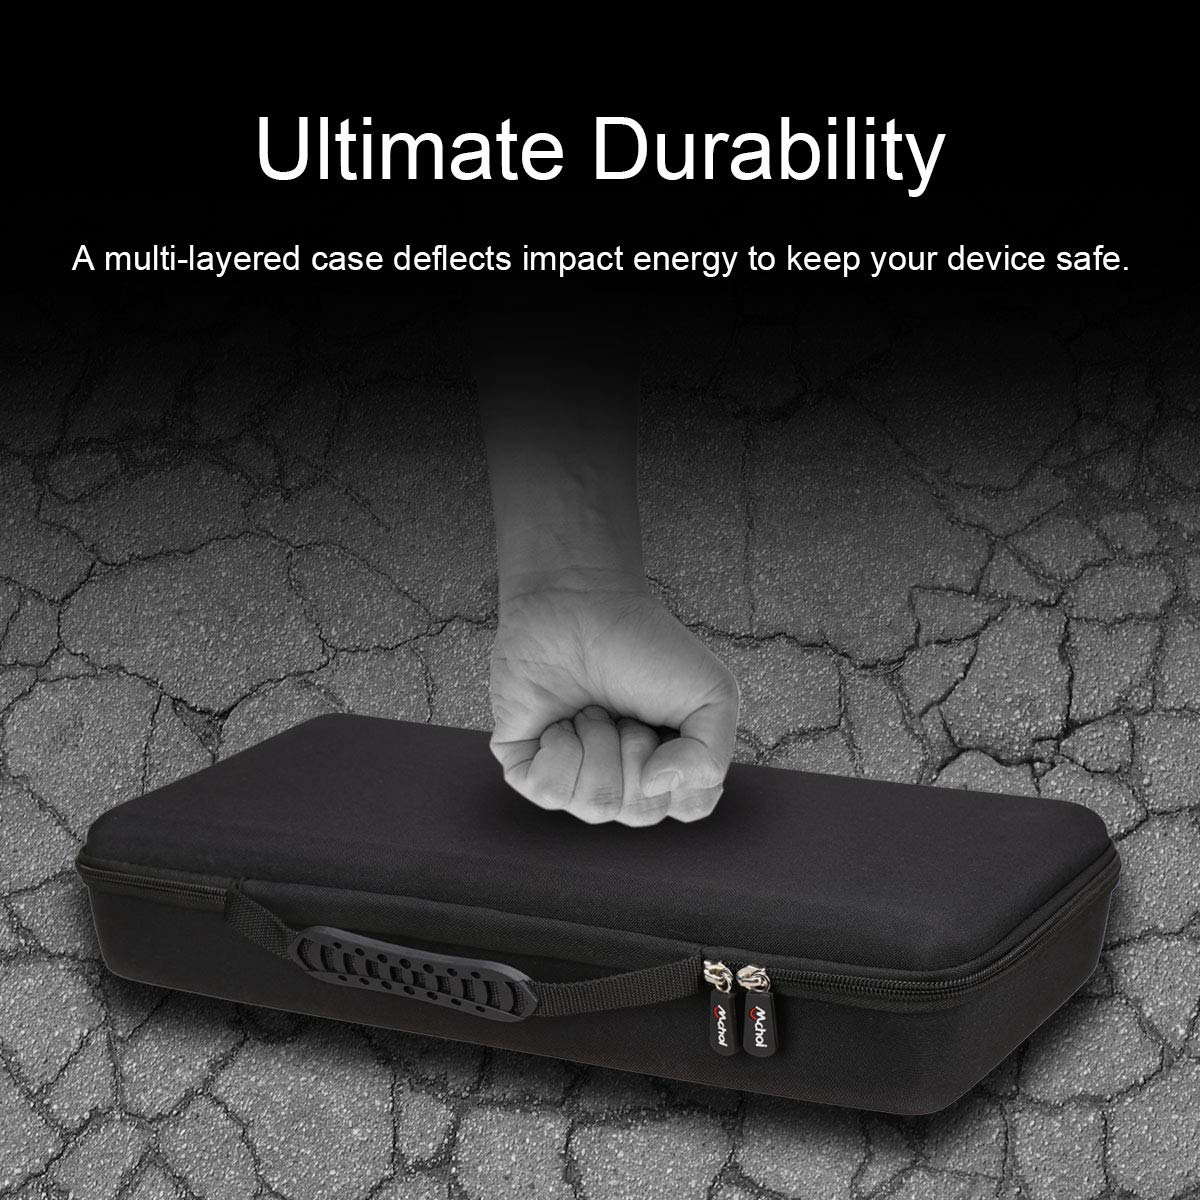 Mchoi Hard Portable Case Fits for Canon PIXMA iP110 Mobile Printer by Mchoi (Image #4)